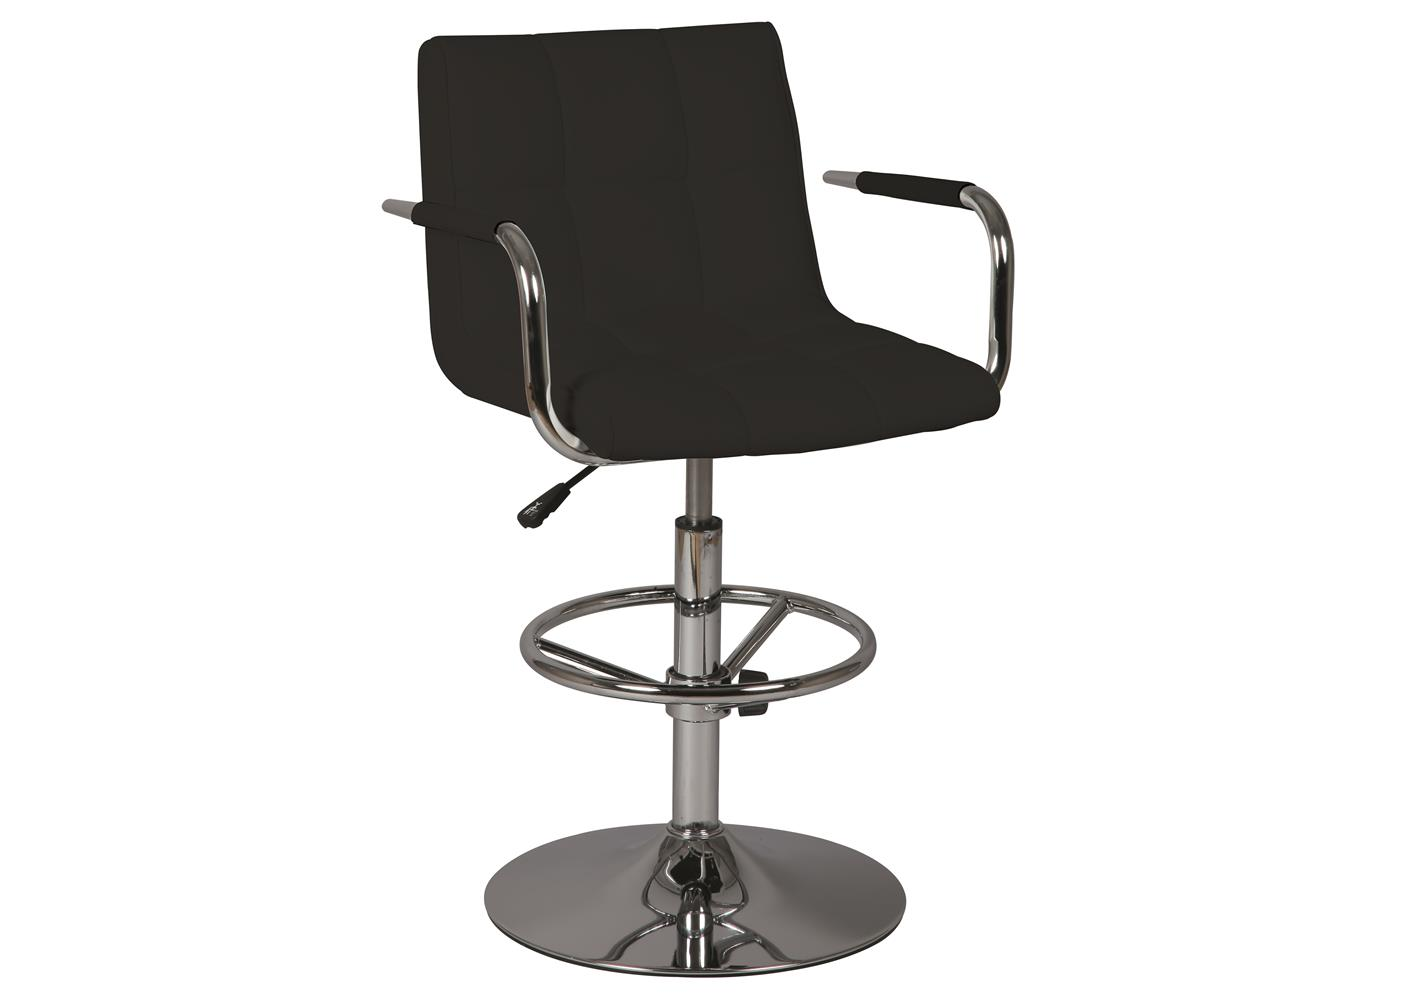 acheter votre tabouret de bar pied chrom assise en pvc noir chez simeuble. Black Bedroom Furniture Sets. Home Design Ideas